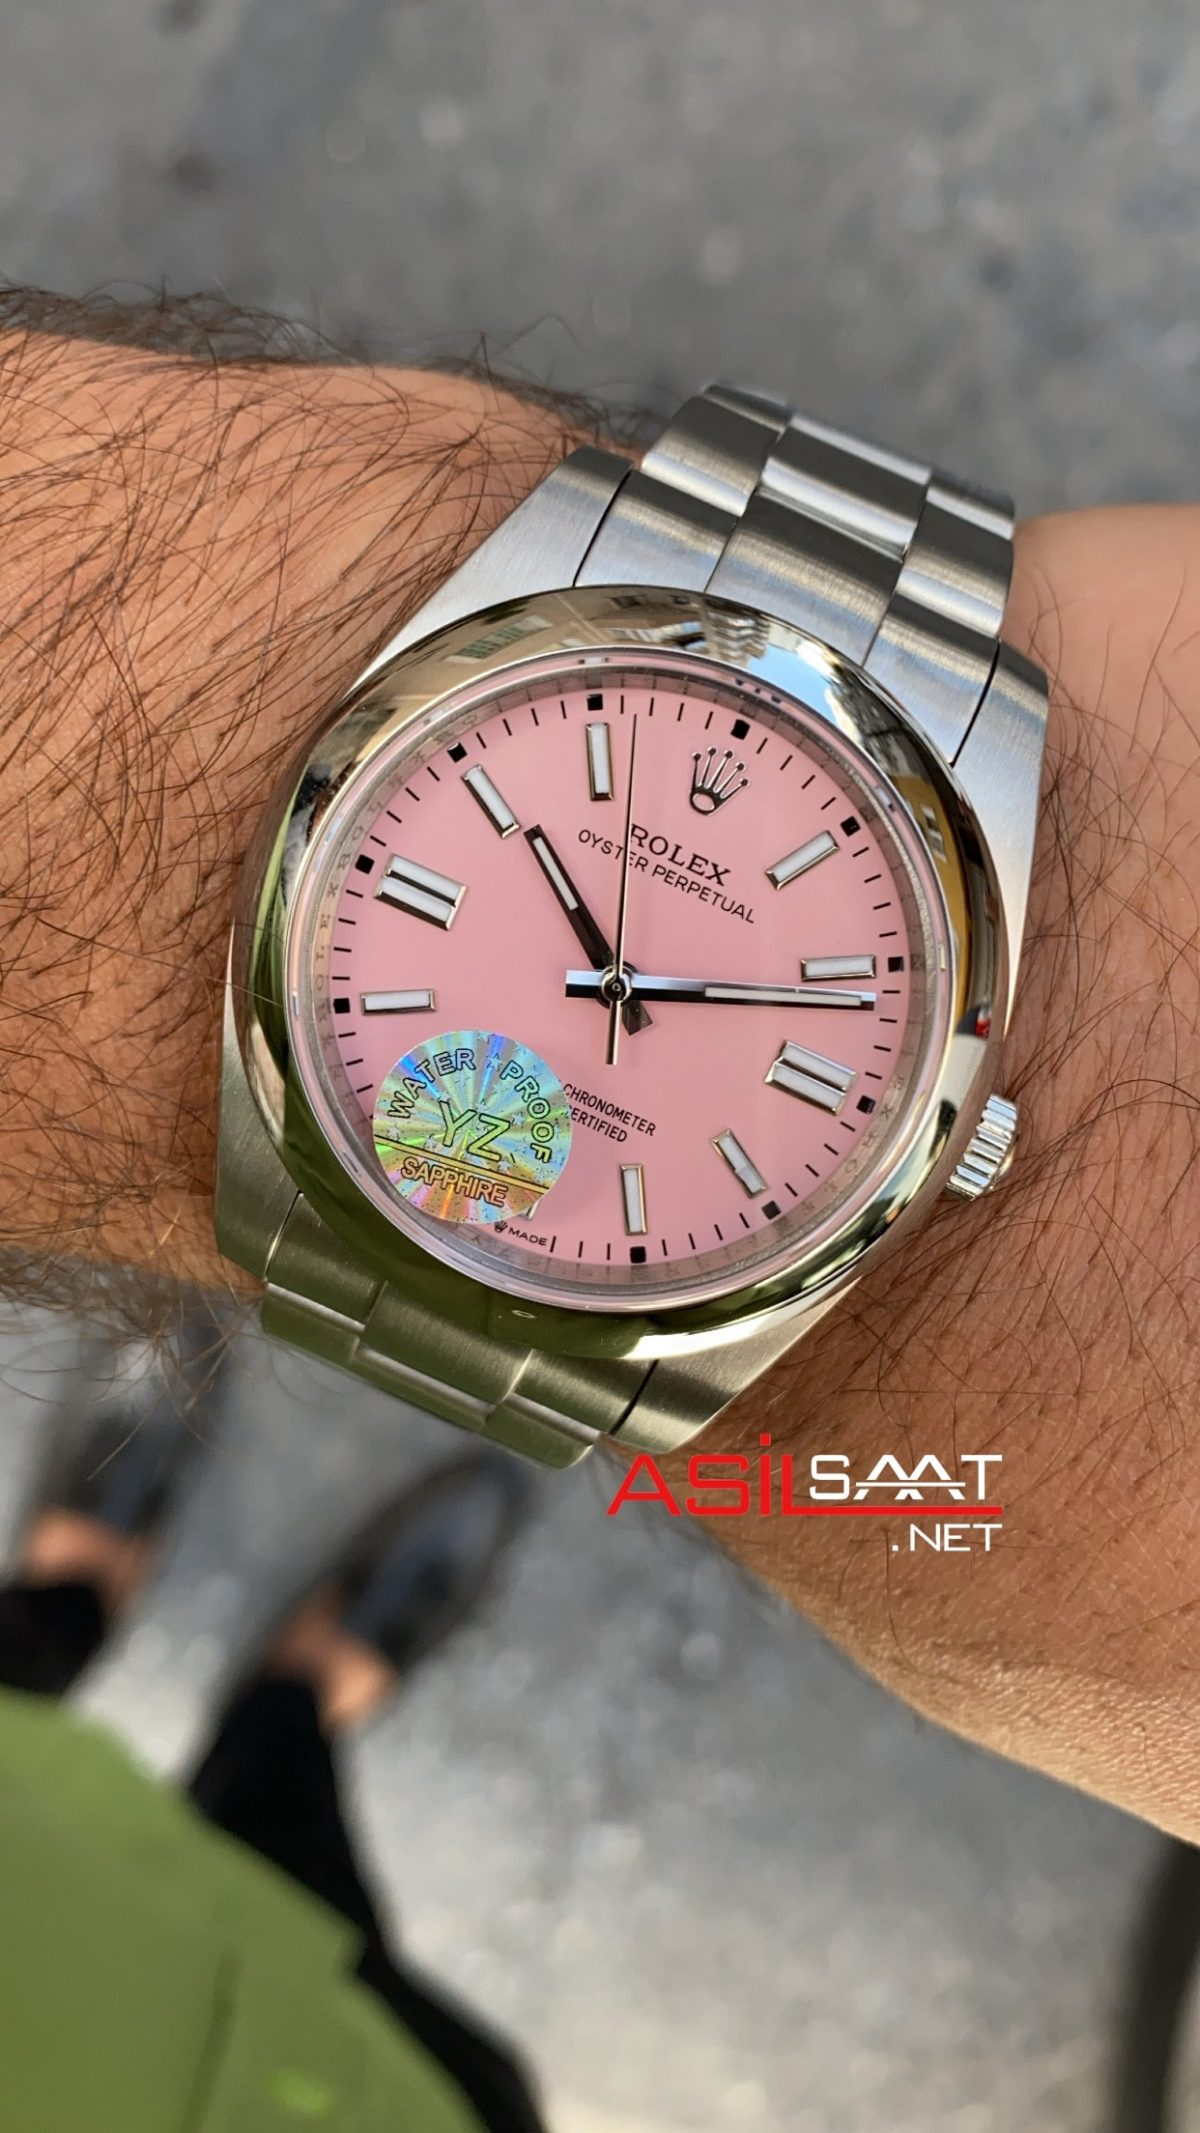 Rolex Oyster Perpetual Pembe 124300 ROLP002